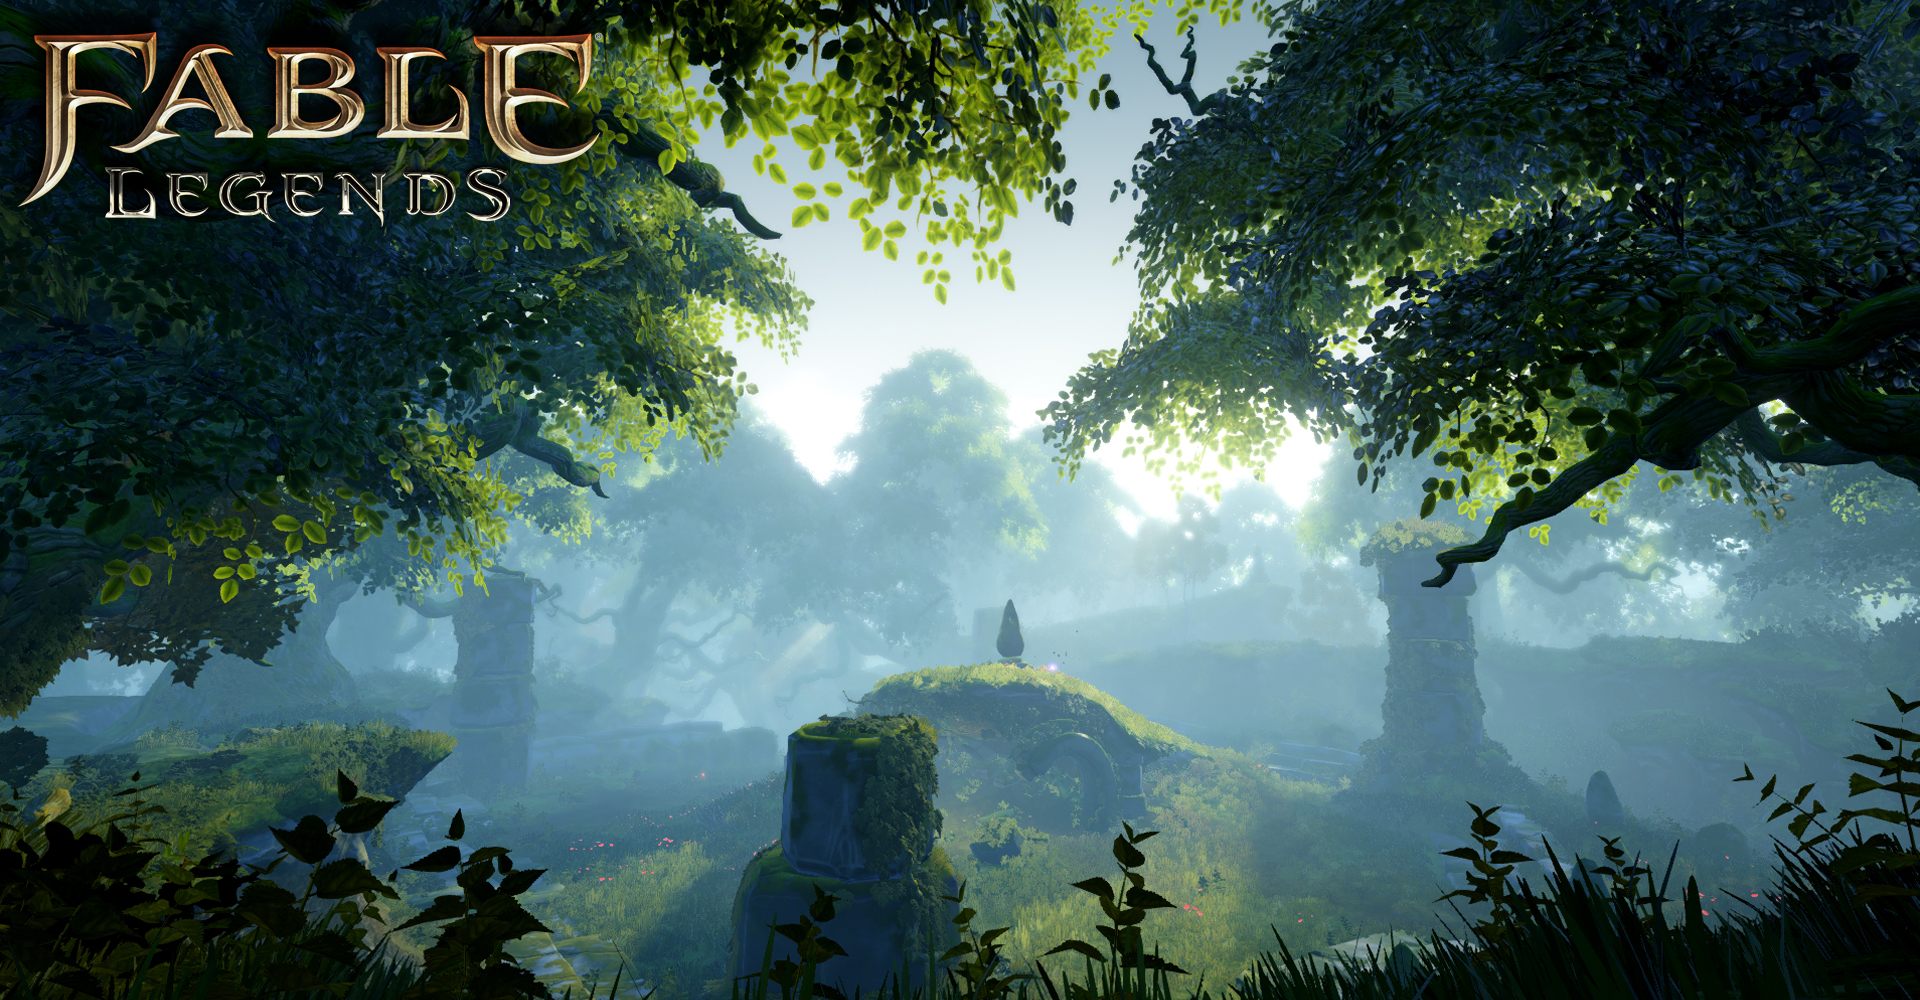 Fable legends 070315